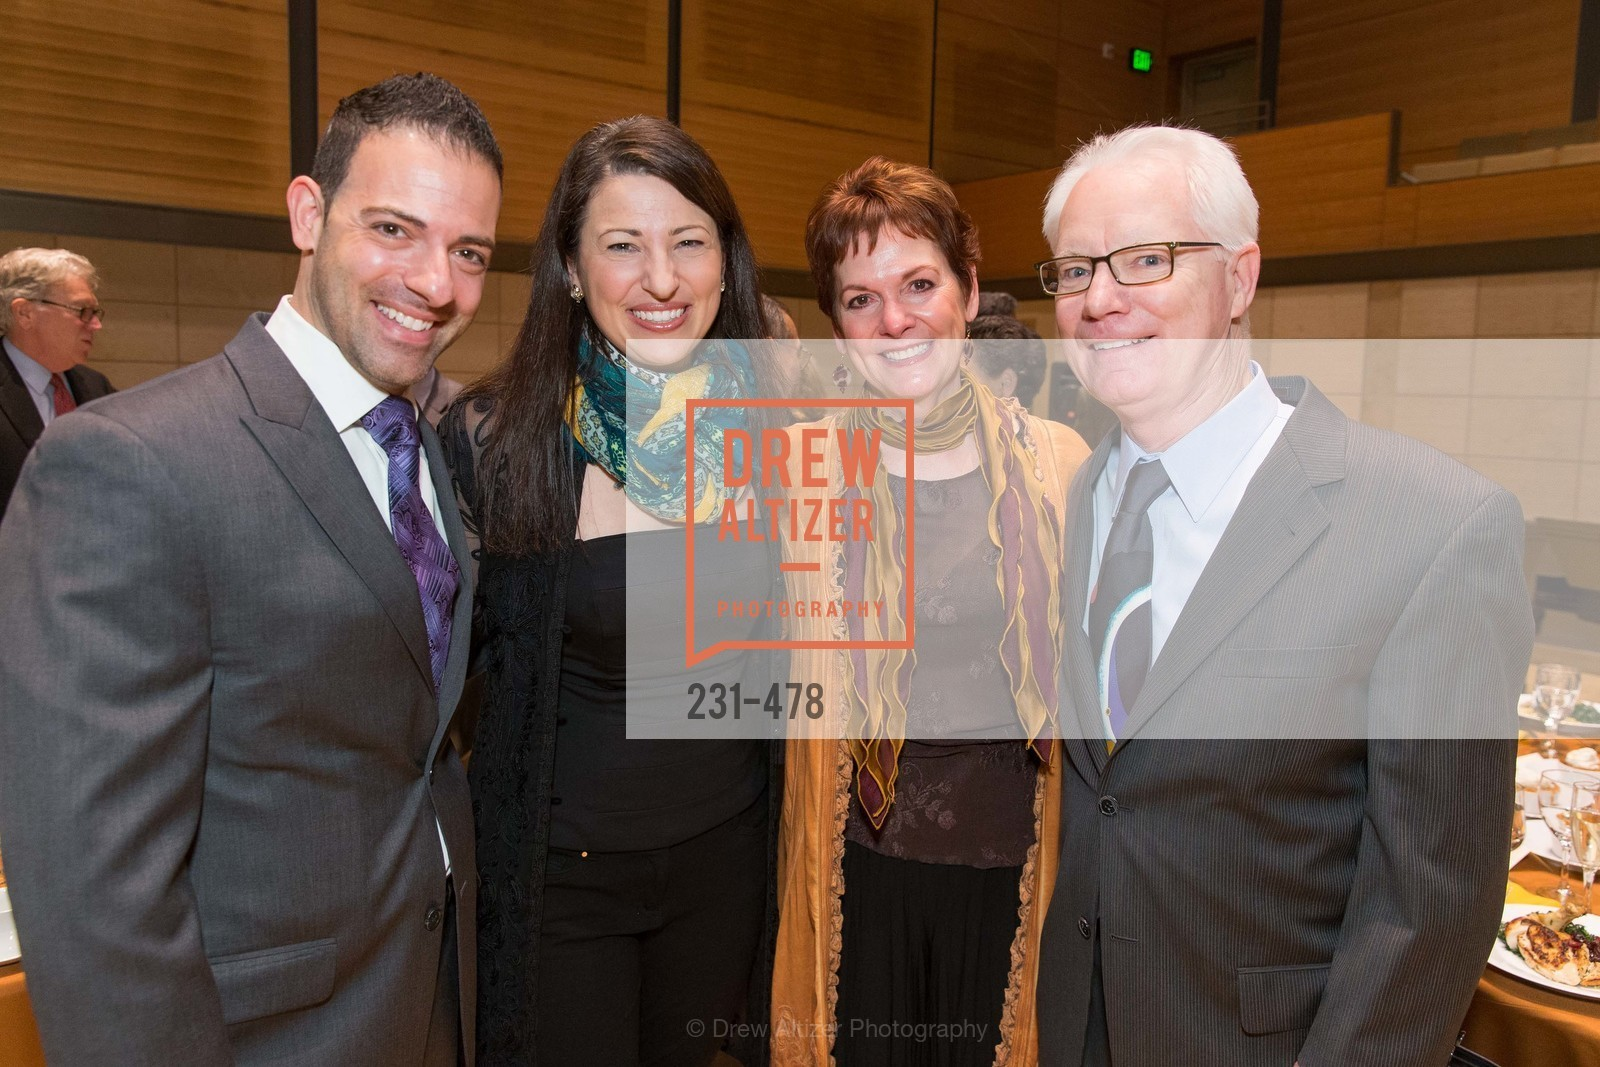 Steve Moretti, Amy Schwartz Moretti, Sam Murdoch, Colin Murdoch, SAN FRANCISCO CONSERVATORY OF MUSIC'S 2014 Fanfare Luncheon, US. Conservatory of Music, January 24th, 2014,Drew Altizer, Drew Altizer Photography, full-service agency, private events, San Francisco photographer, photographer california